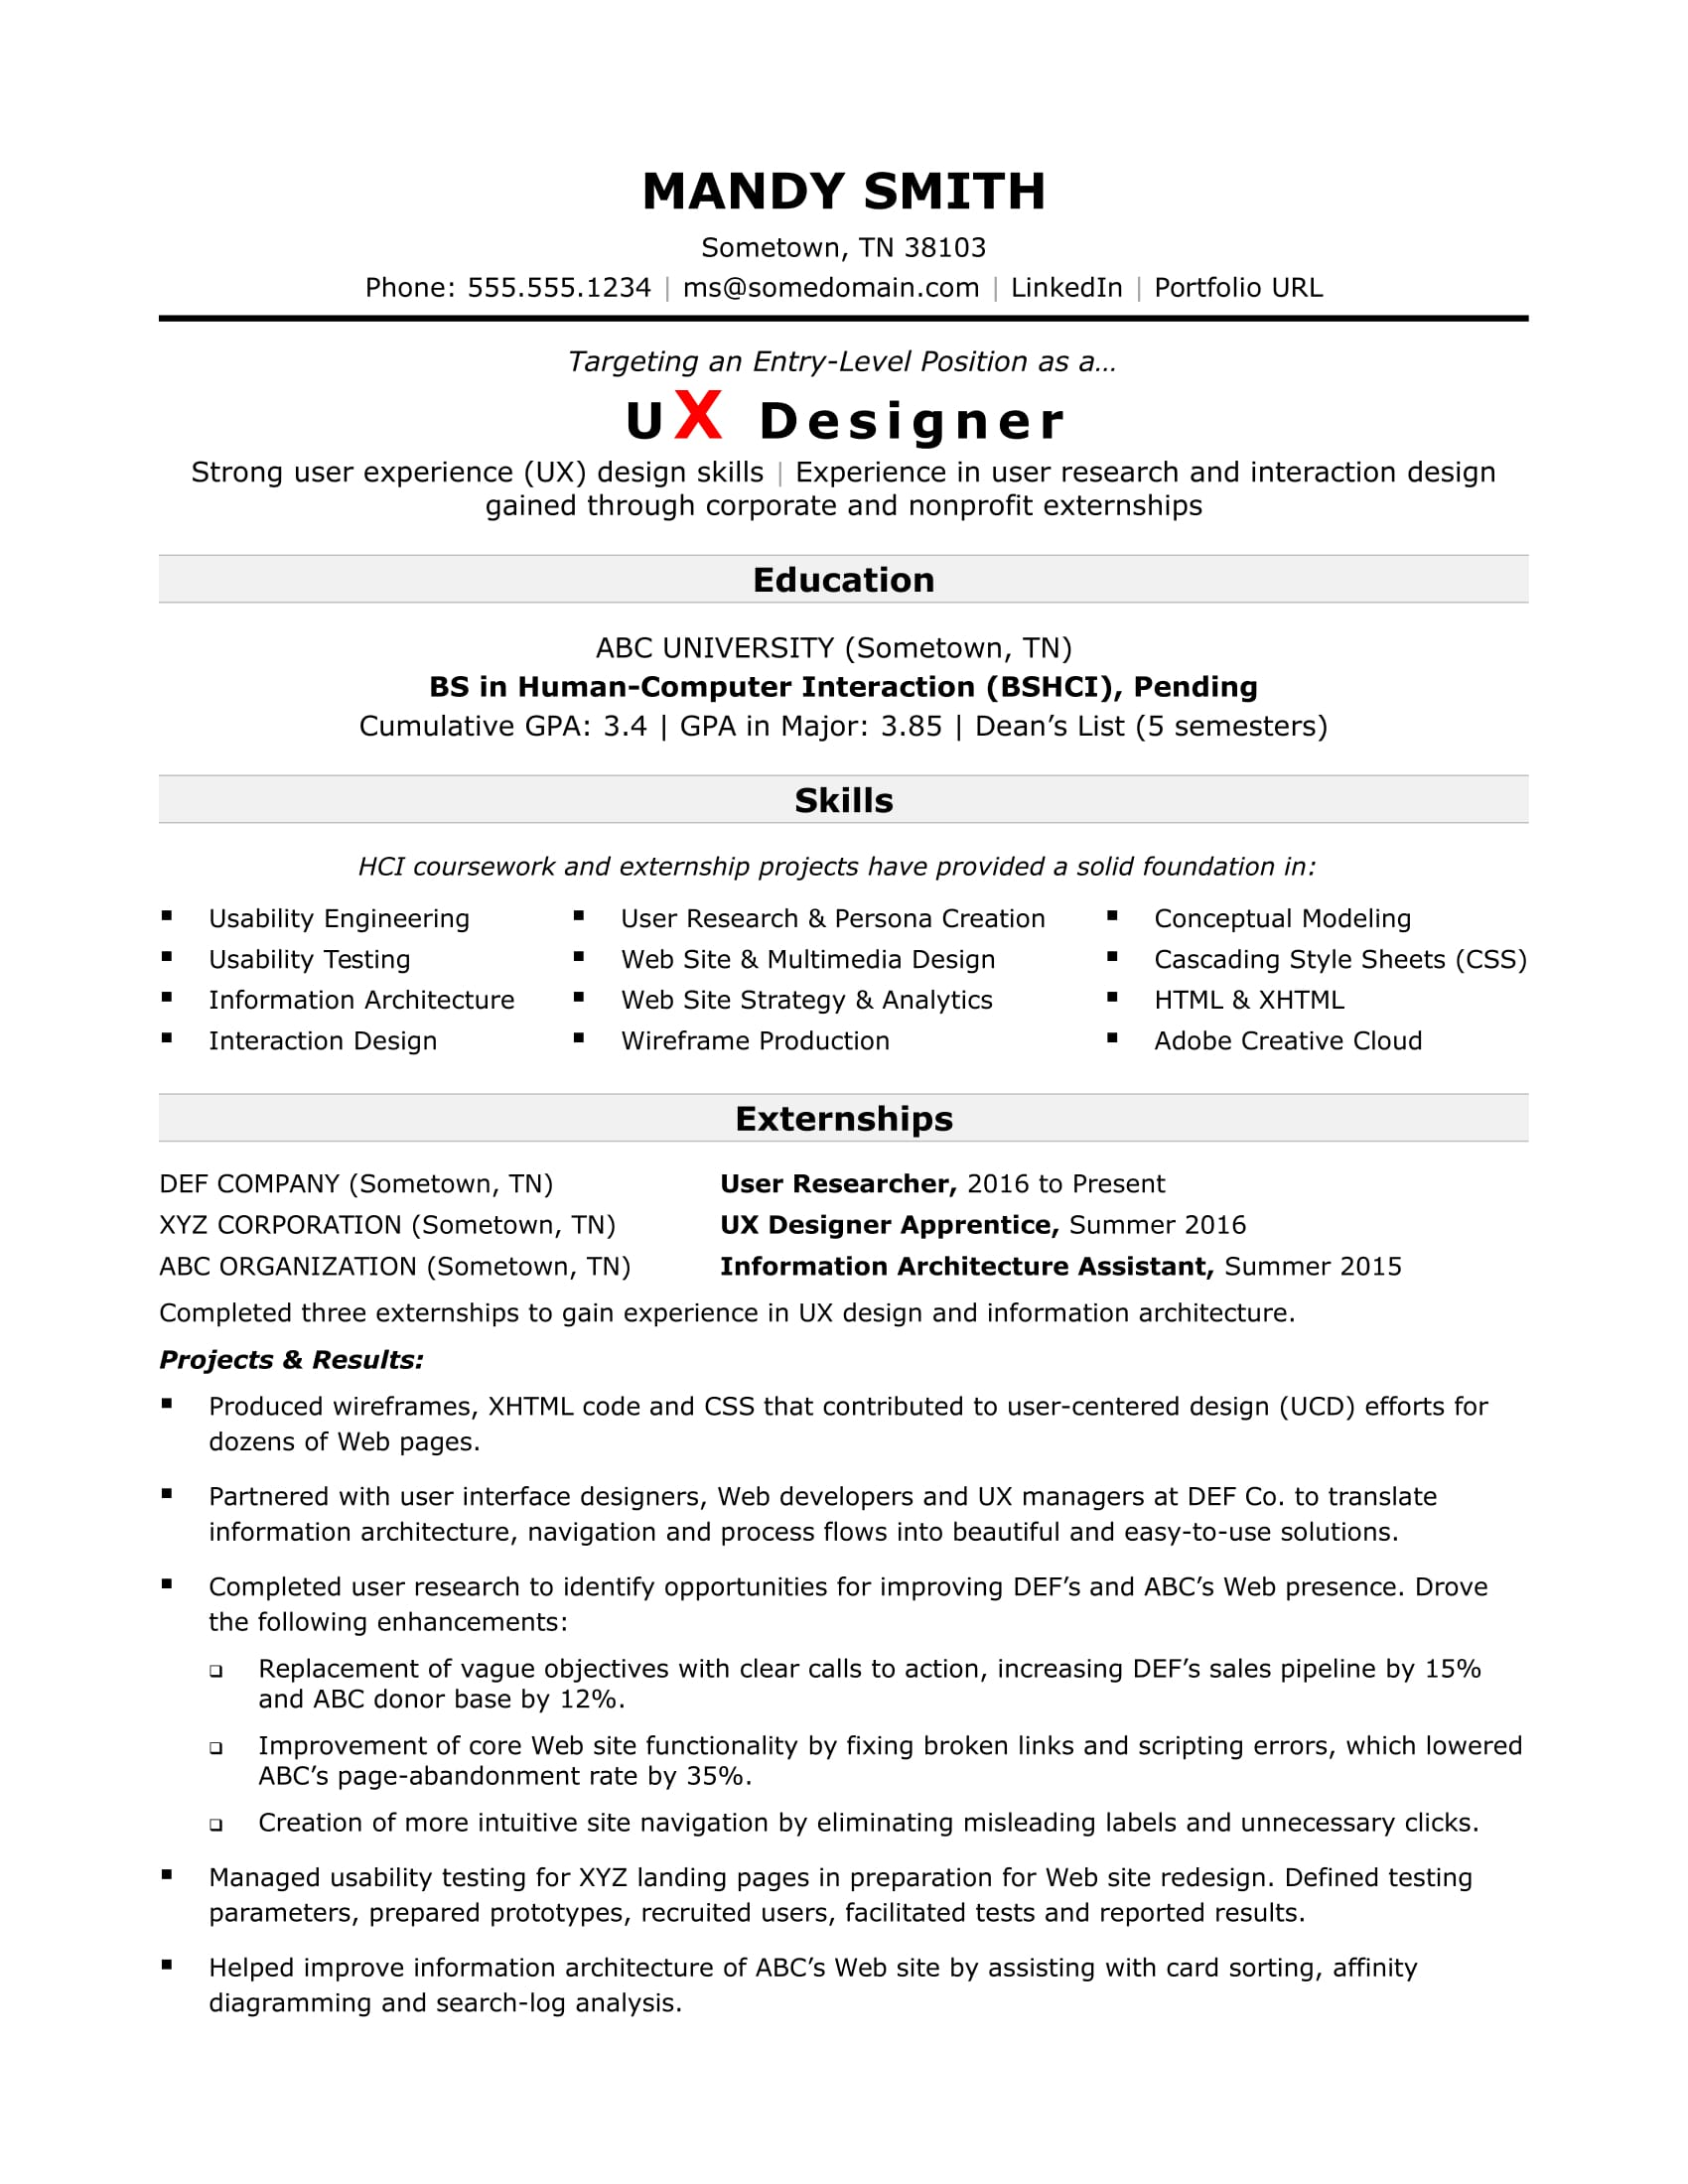 sample resume for an entry